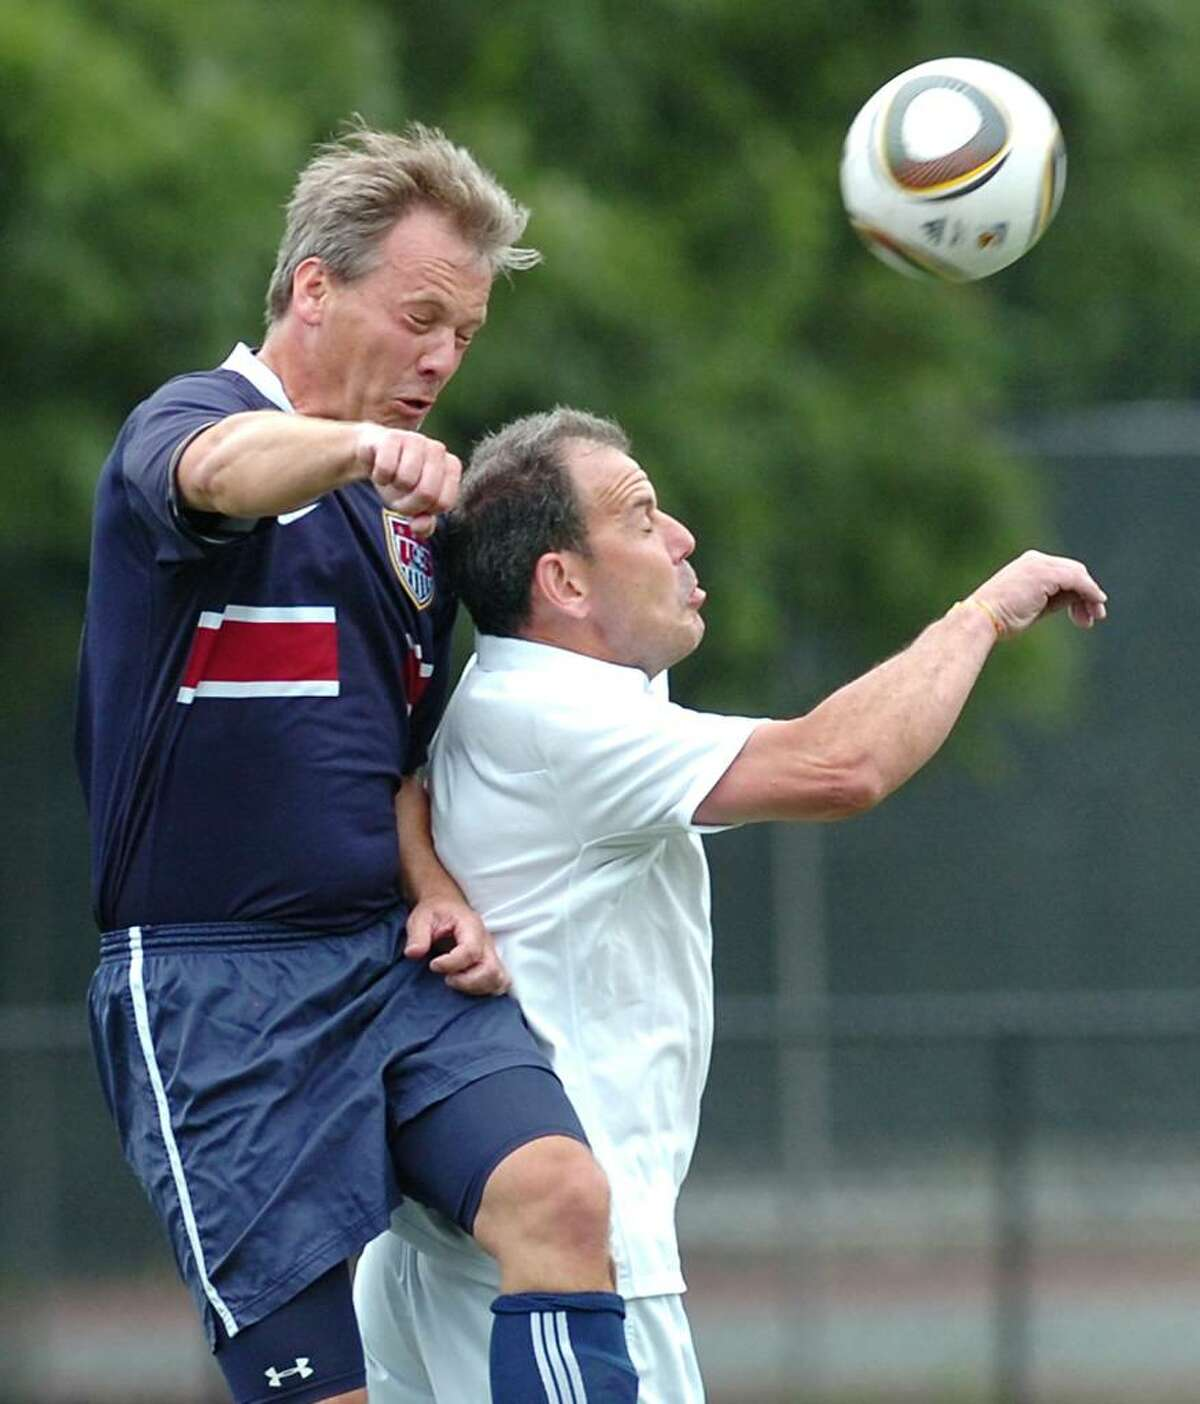 Paul Korngiebel, left, playing for team USA heads the ball over Martin Waters, playing for the English team, during a pick-up game of soccer between Yanks and Brits at Greenwich High School, June 12, 2010. Both men are Greenwich residents.